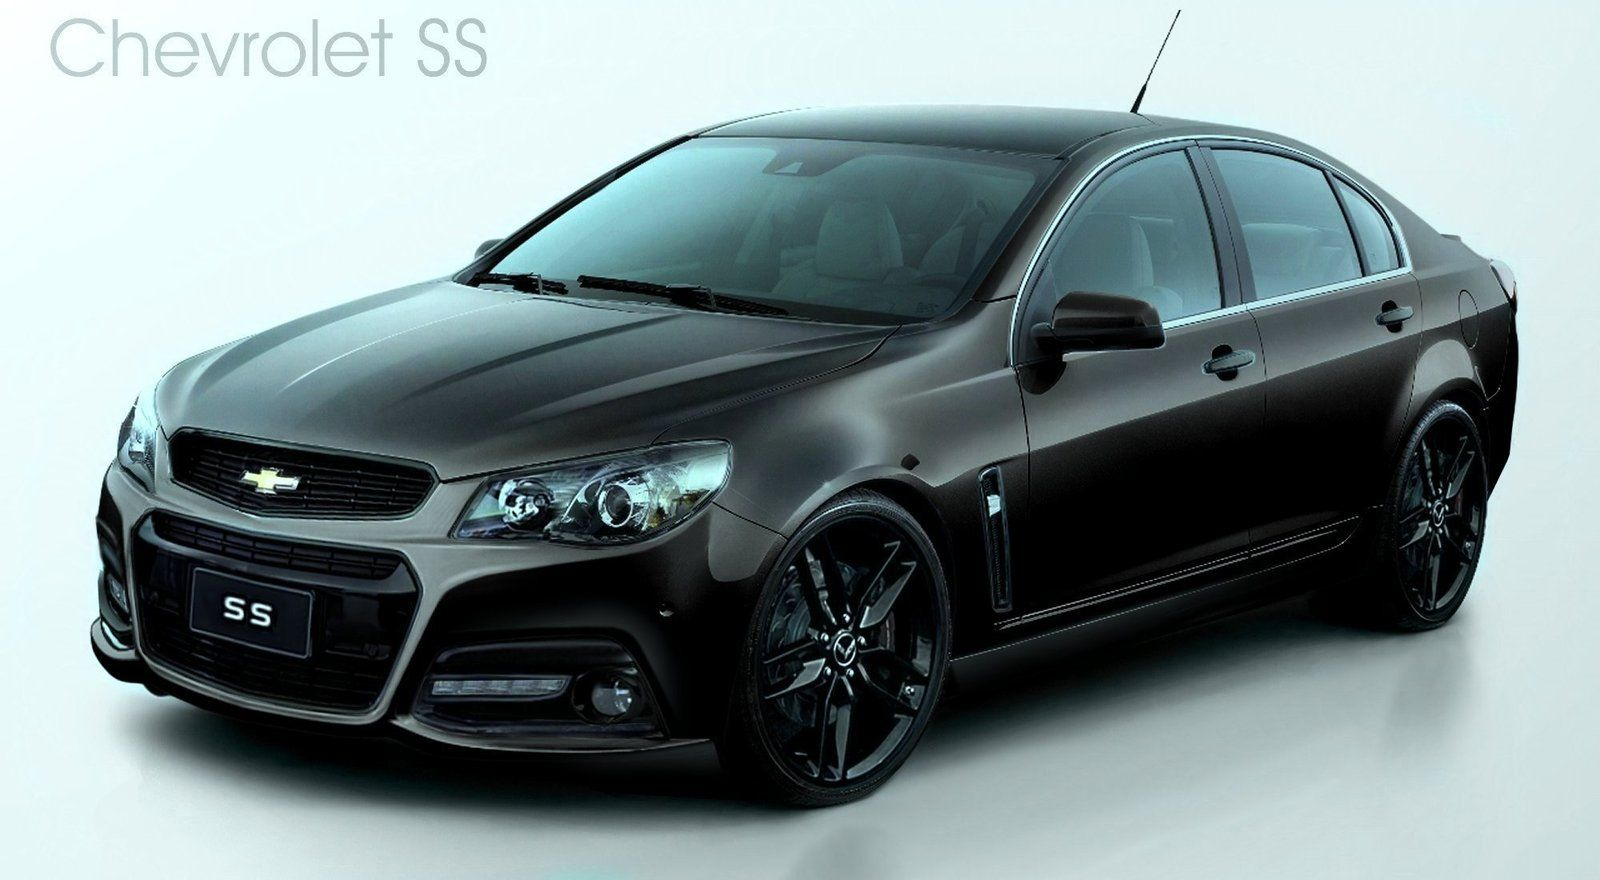 Chevy Ss Pictures Chevrolet Ss Performance Sedan With